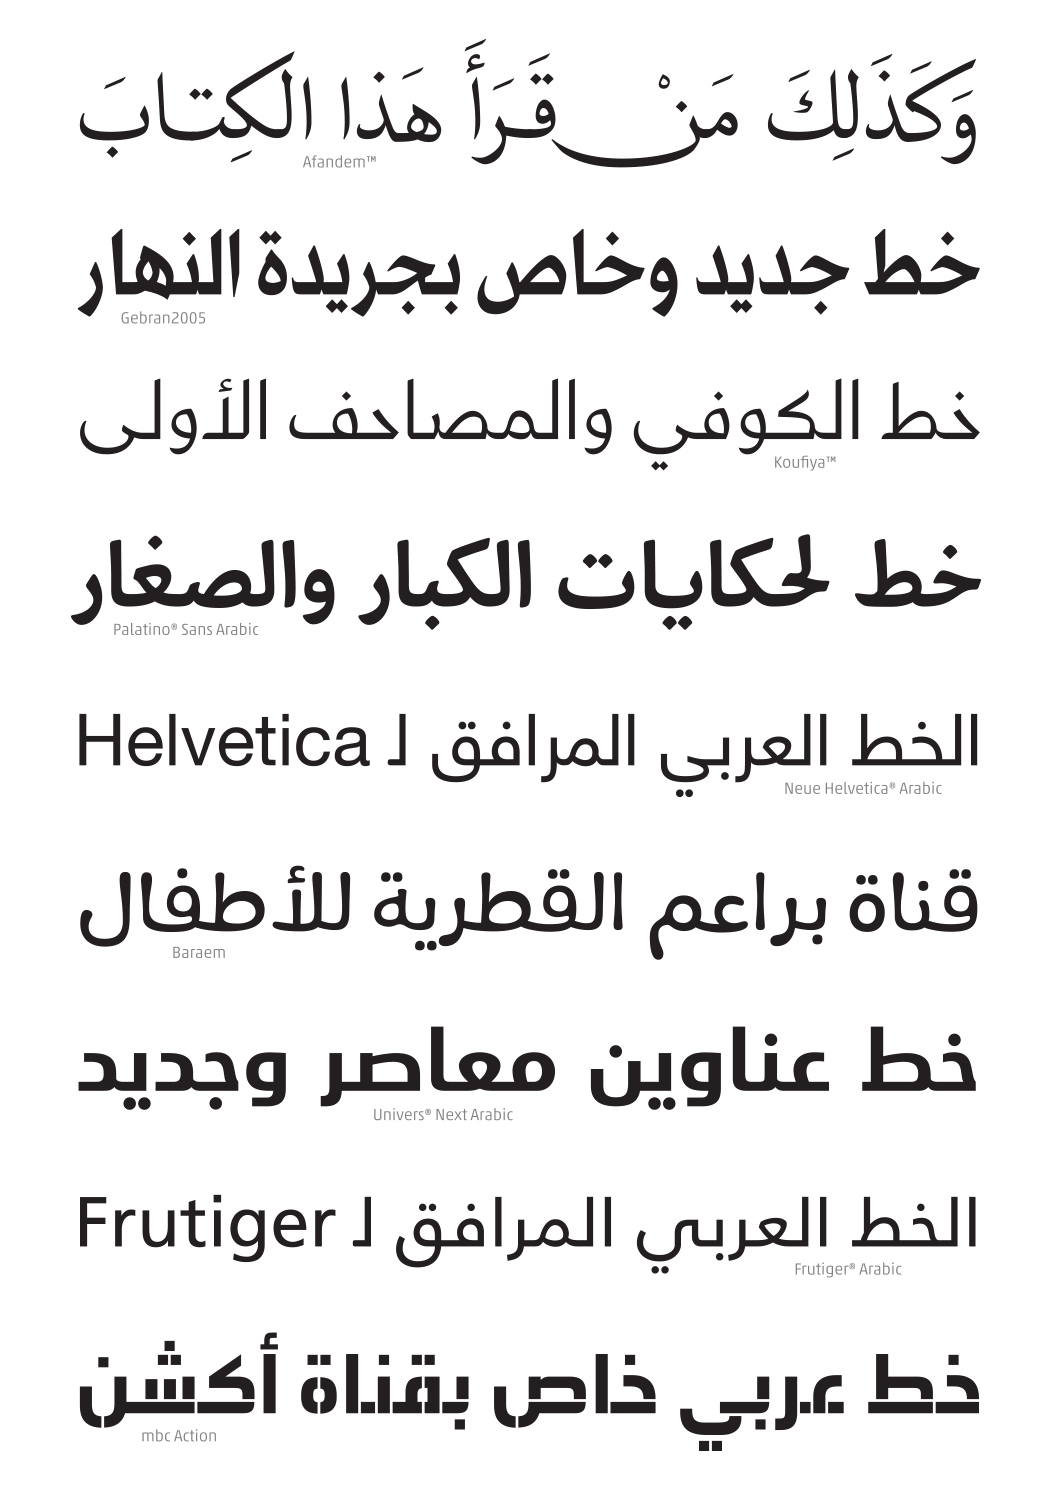 Arabic typefaces designed by Nadine Chahine, including Helvetica Arabic